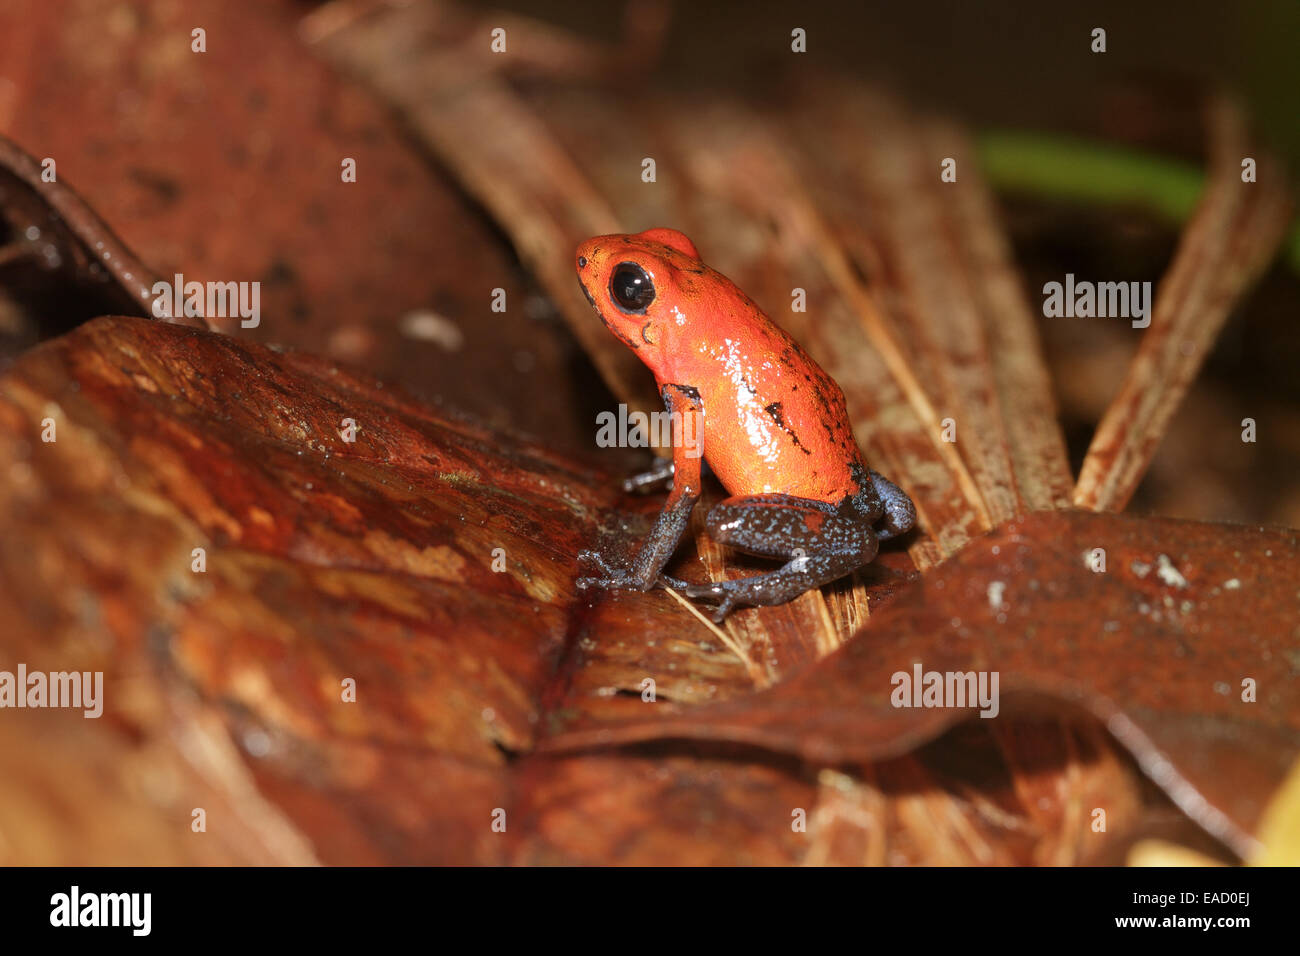 Strawberry Poison-dart Frog, Oophaga pumilio - Stock Image